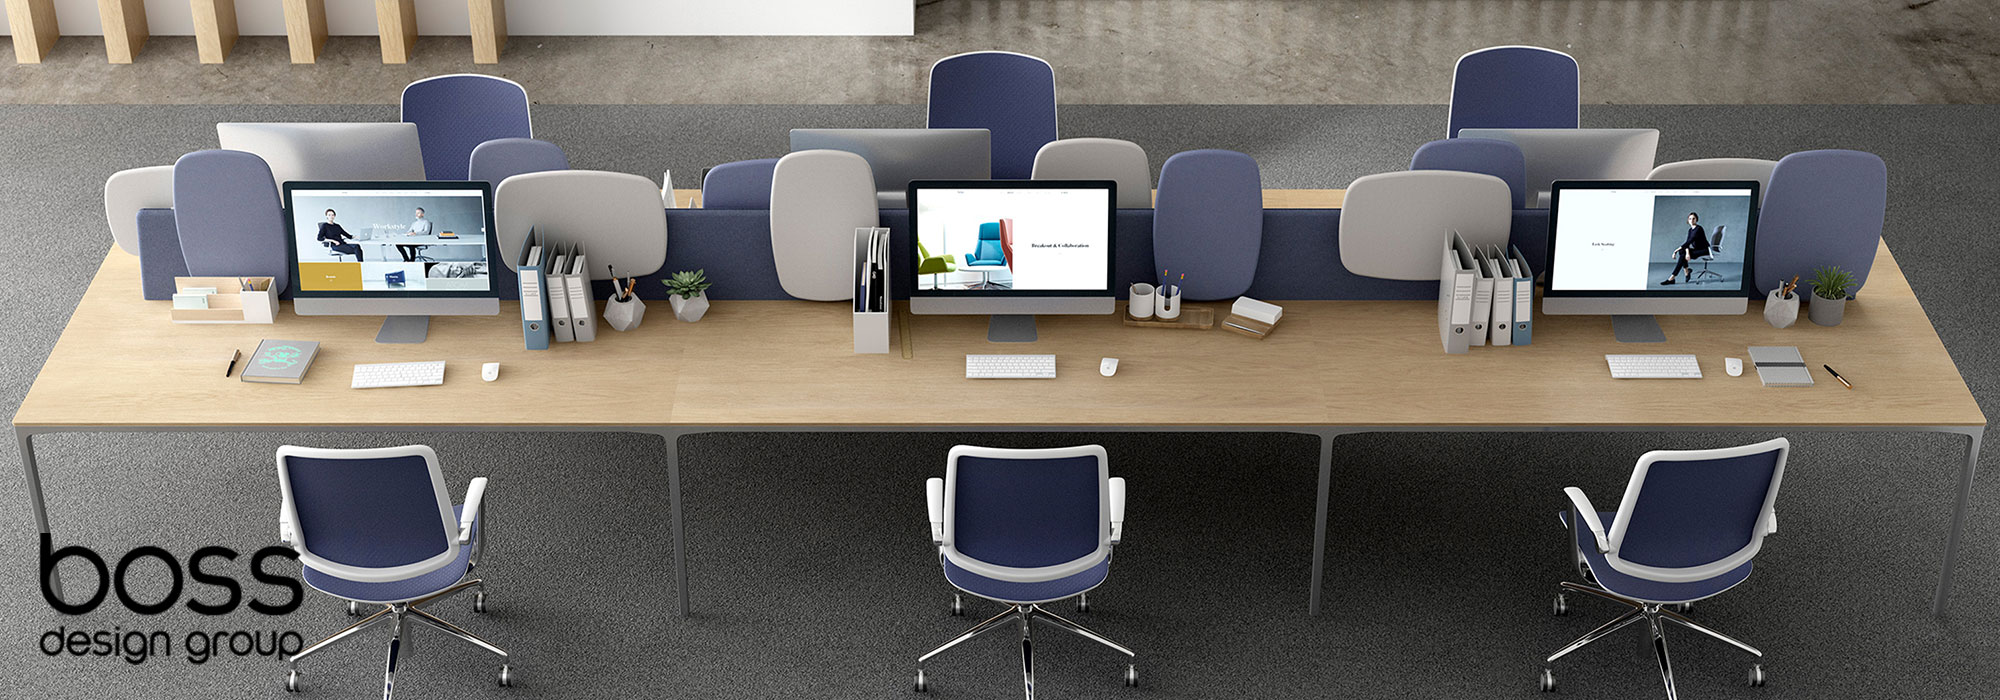 Boss Design Atom Desking